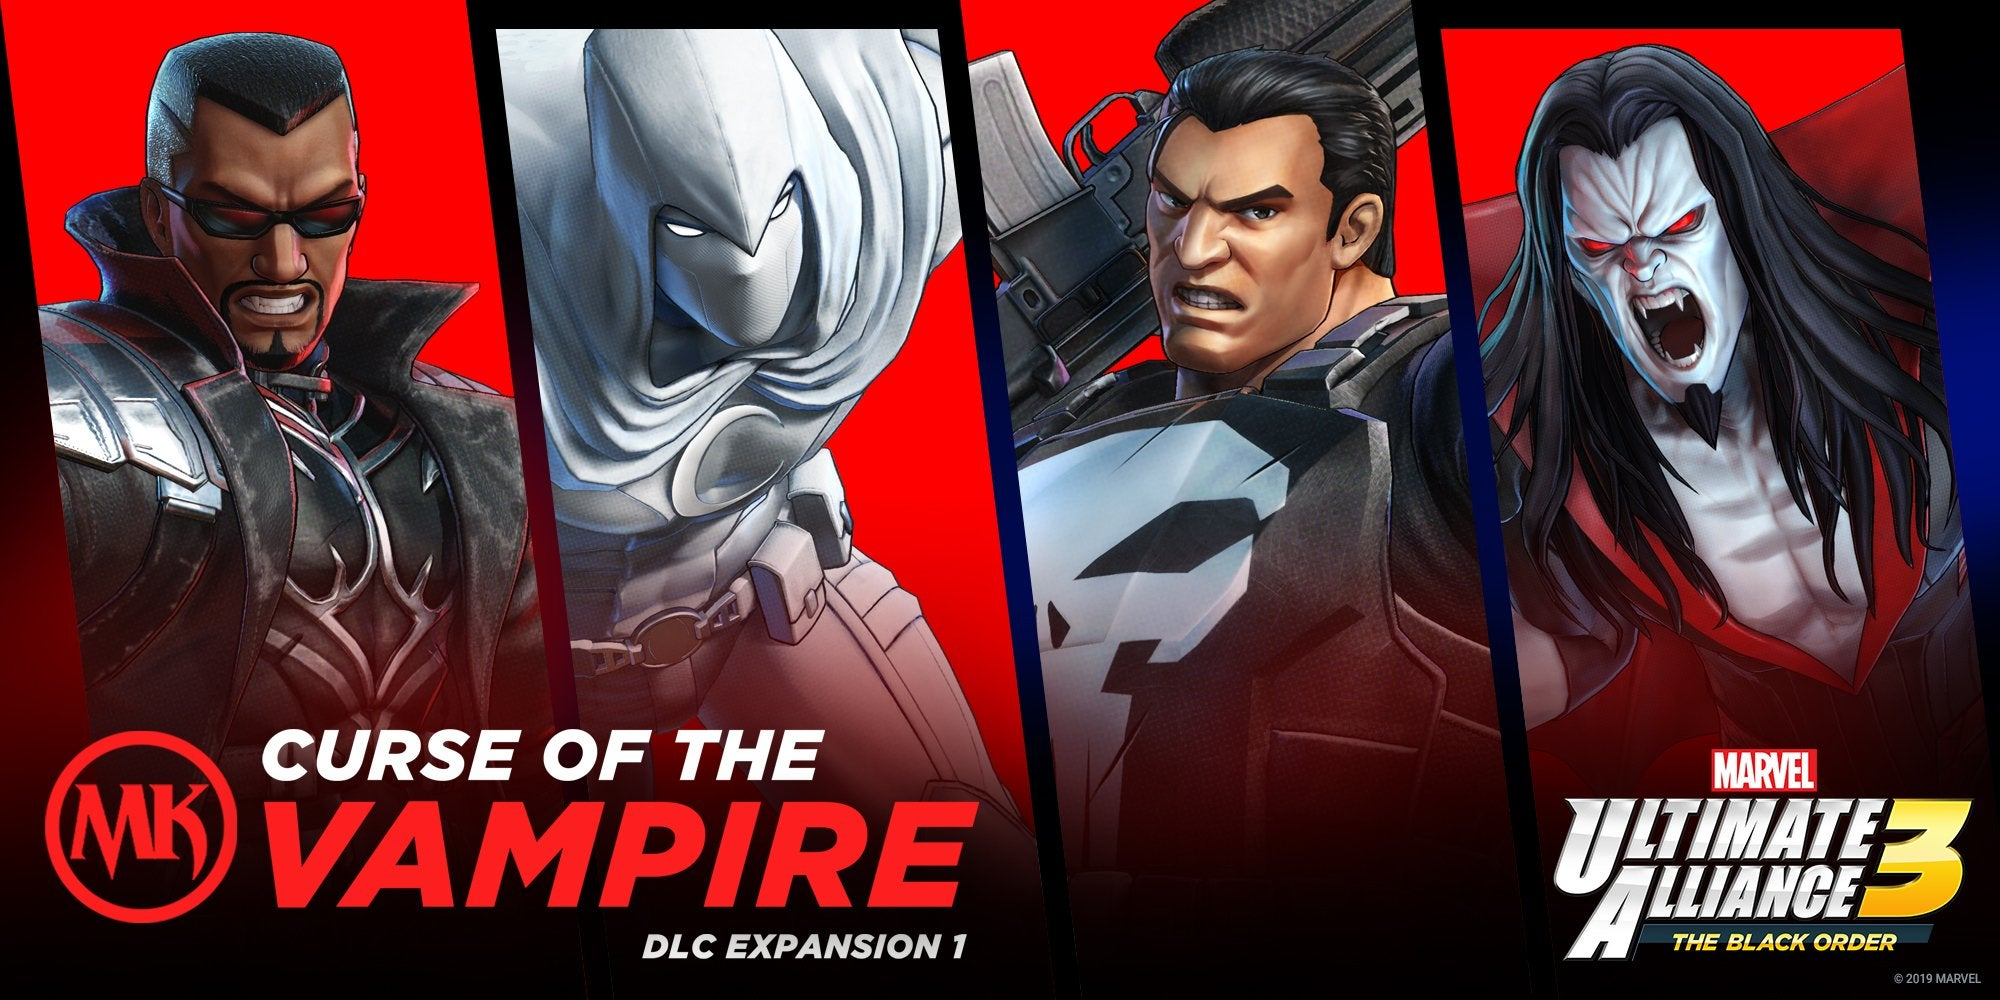 Marvel Ultimate Alliance 3's First Expansion Adds New Missions And Modes In September